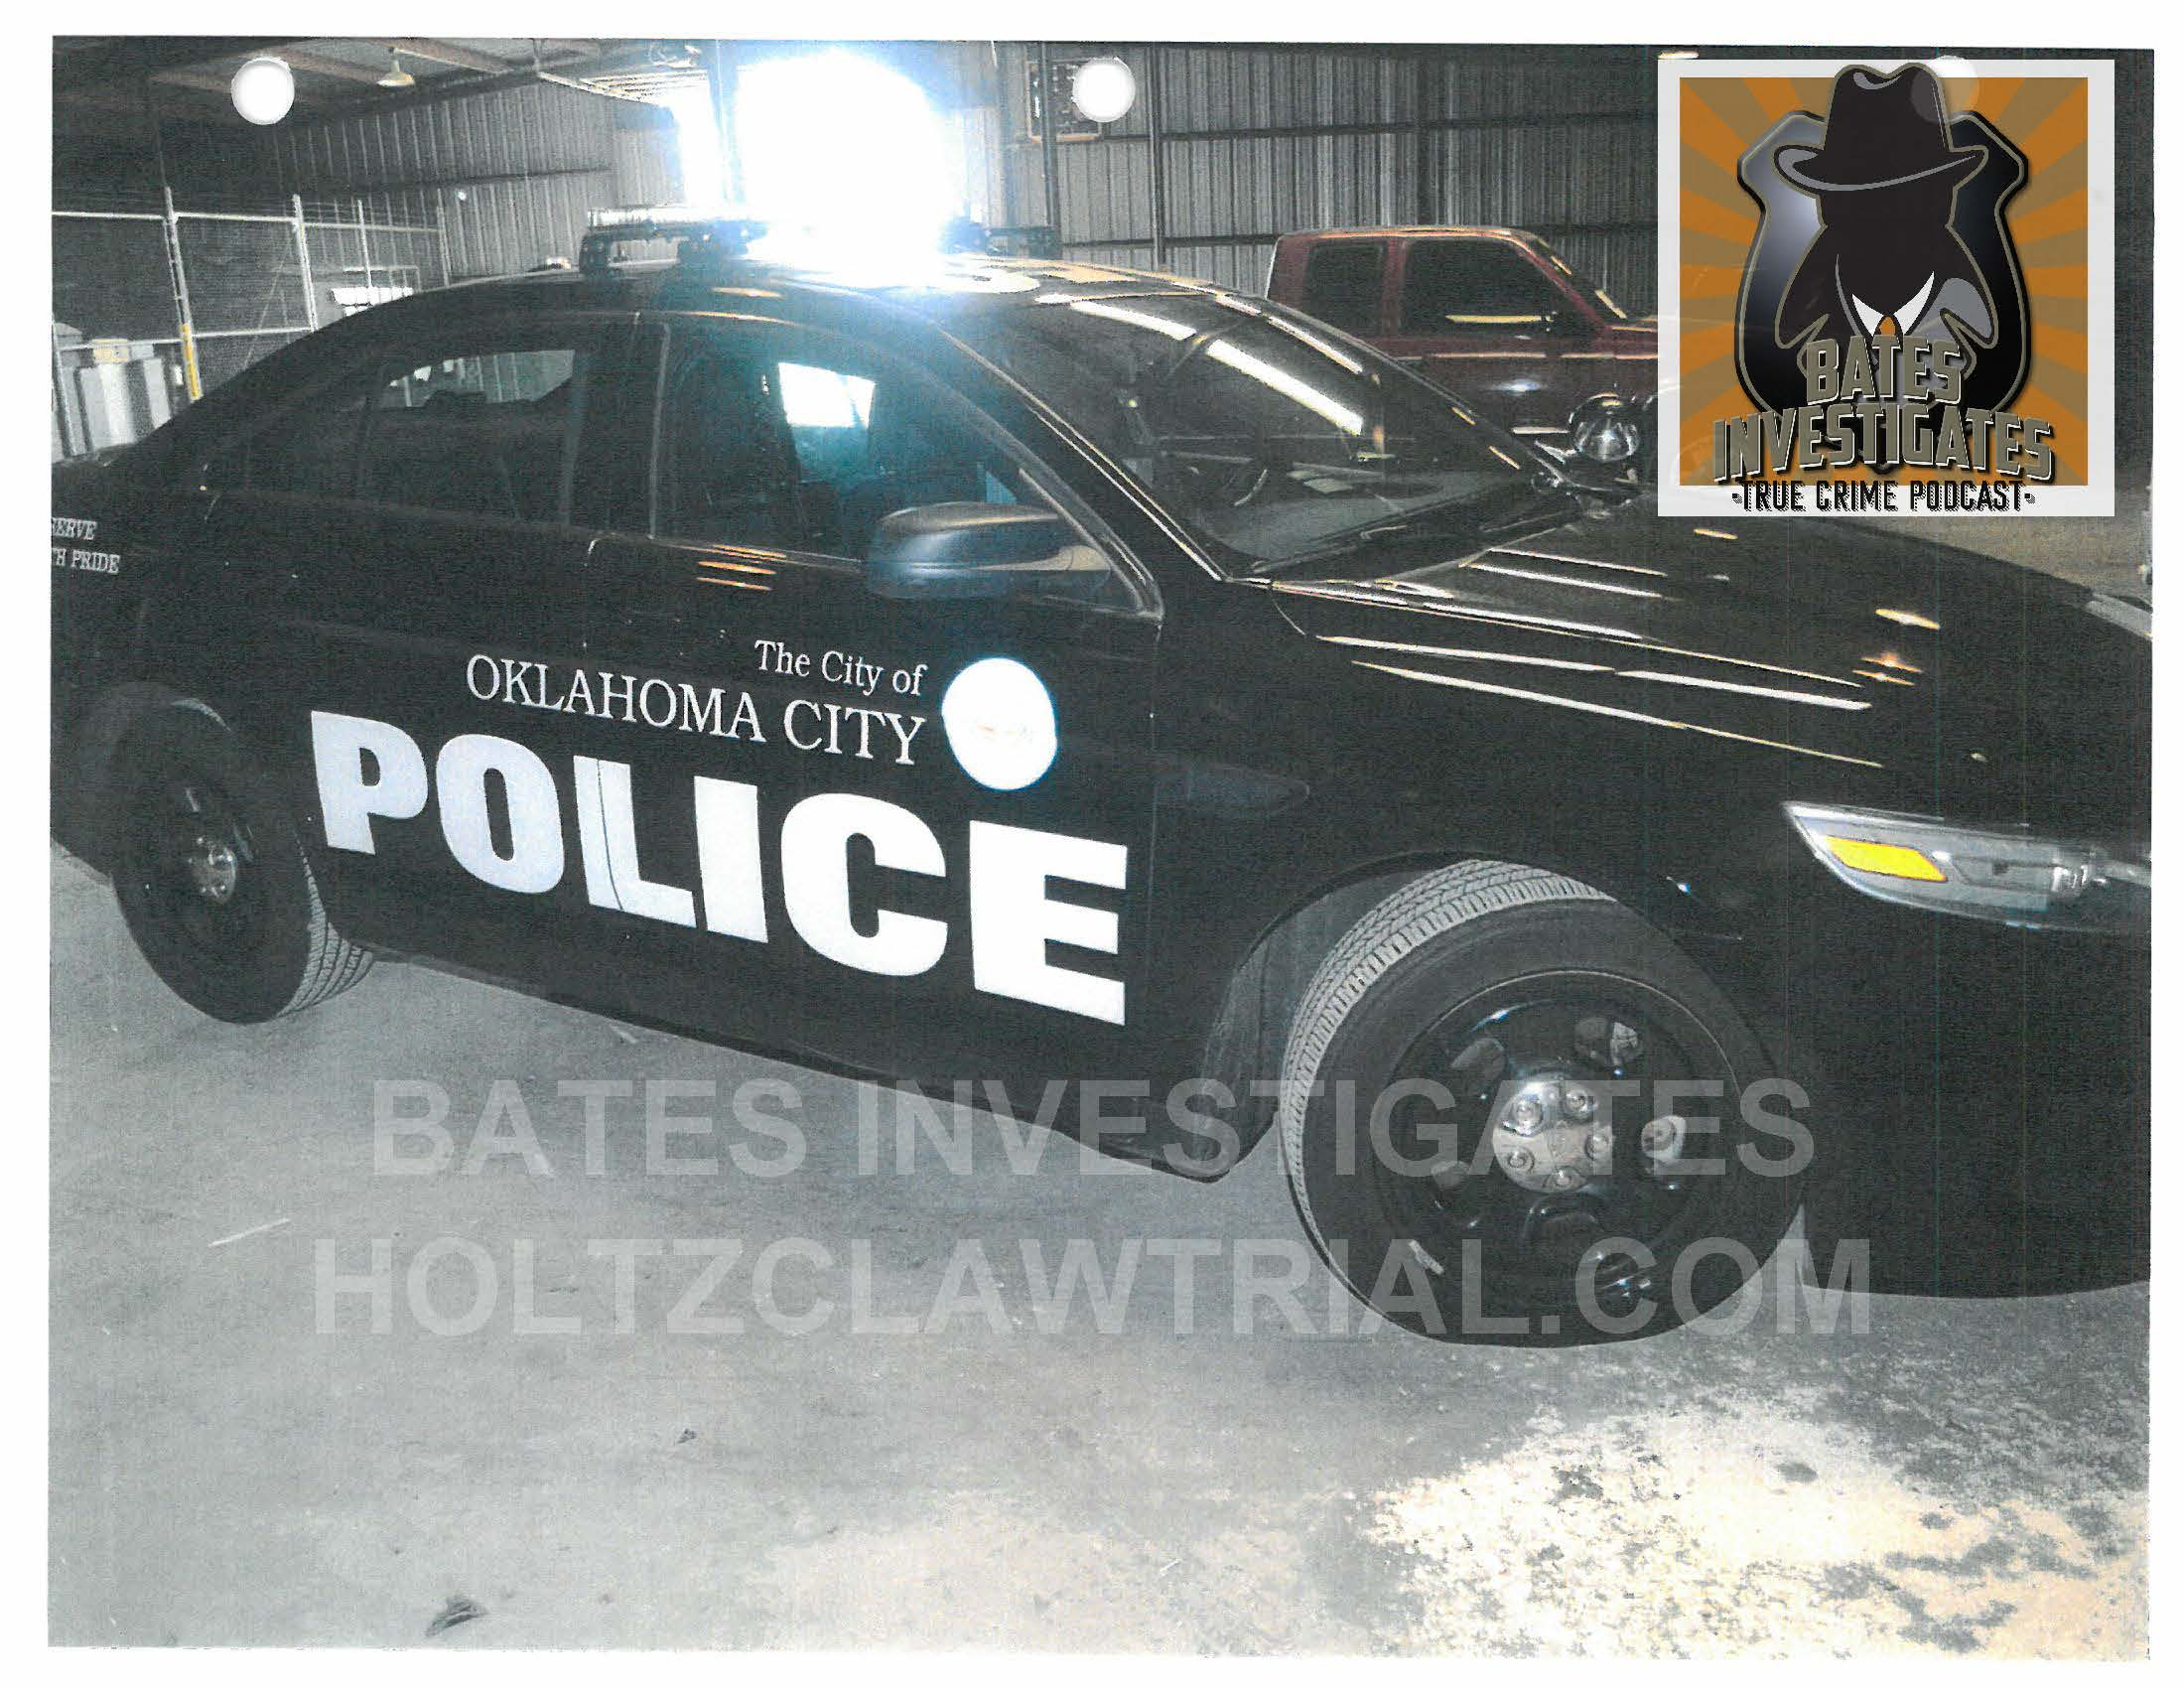 Holtzclaw Daniel - OCPD Patrol Car Photos Watermarked_Page_01.jpg